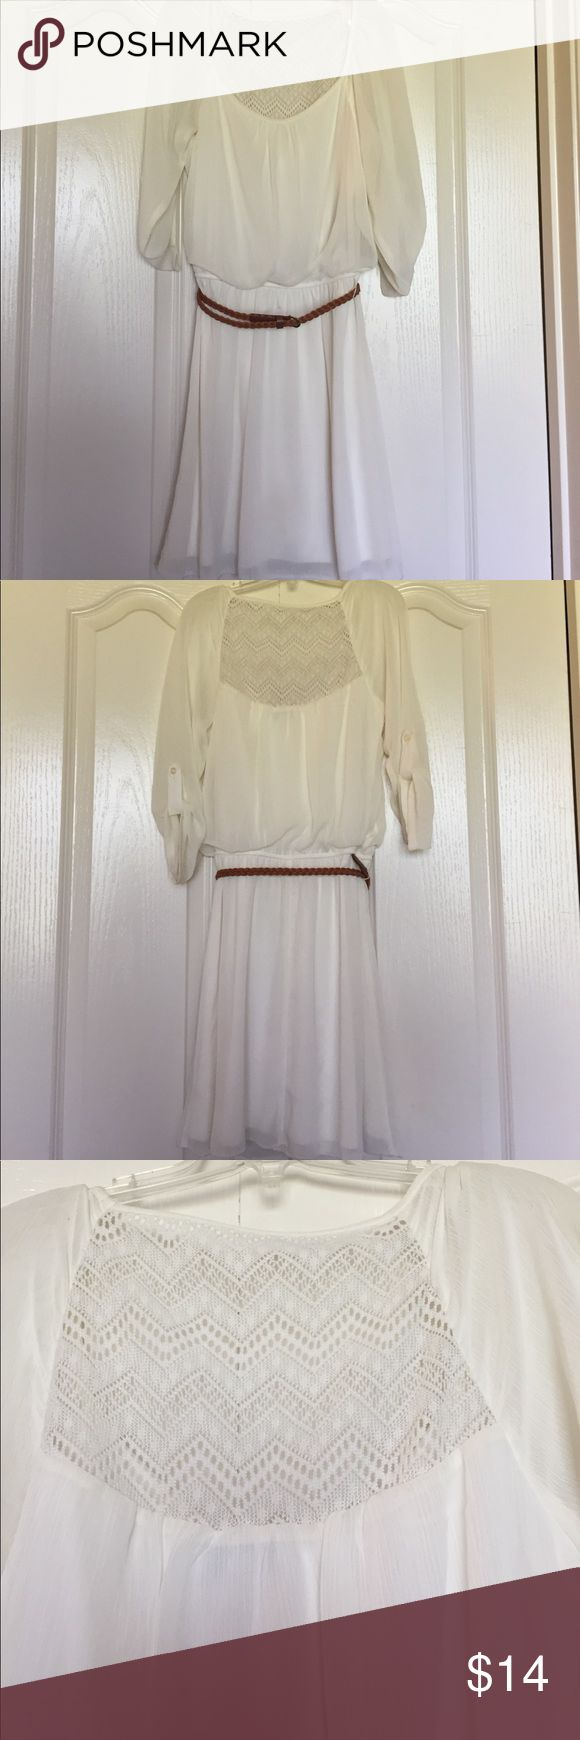 NWOT Ivory lace-back dress New without tags. Comes from a smoke free home. 😊 Dresses